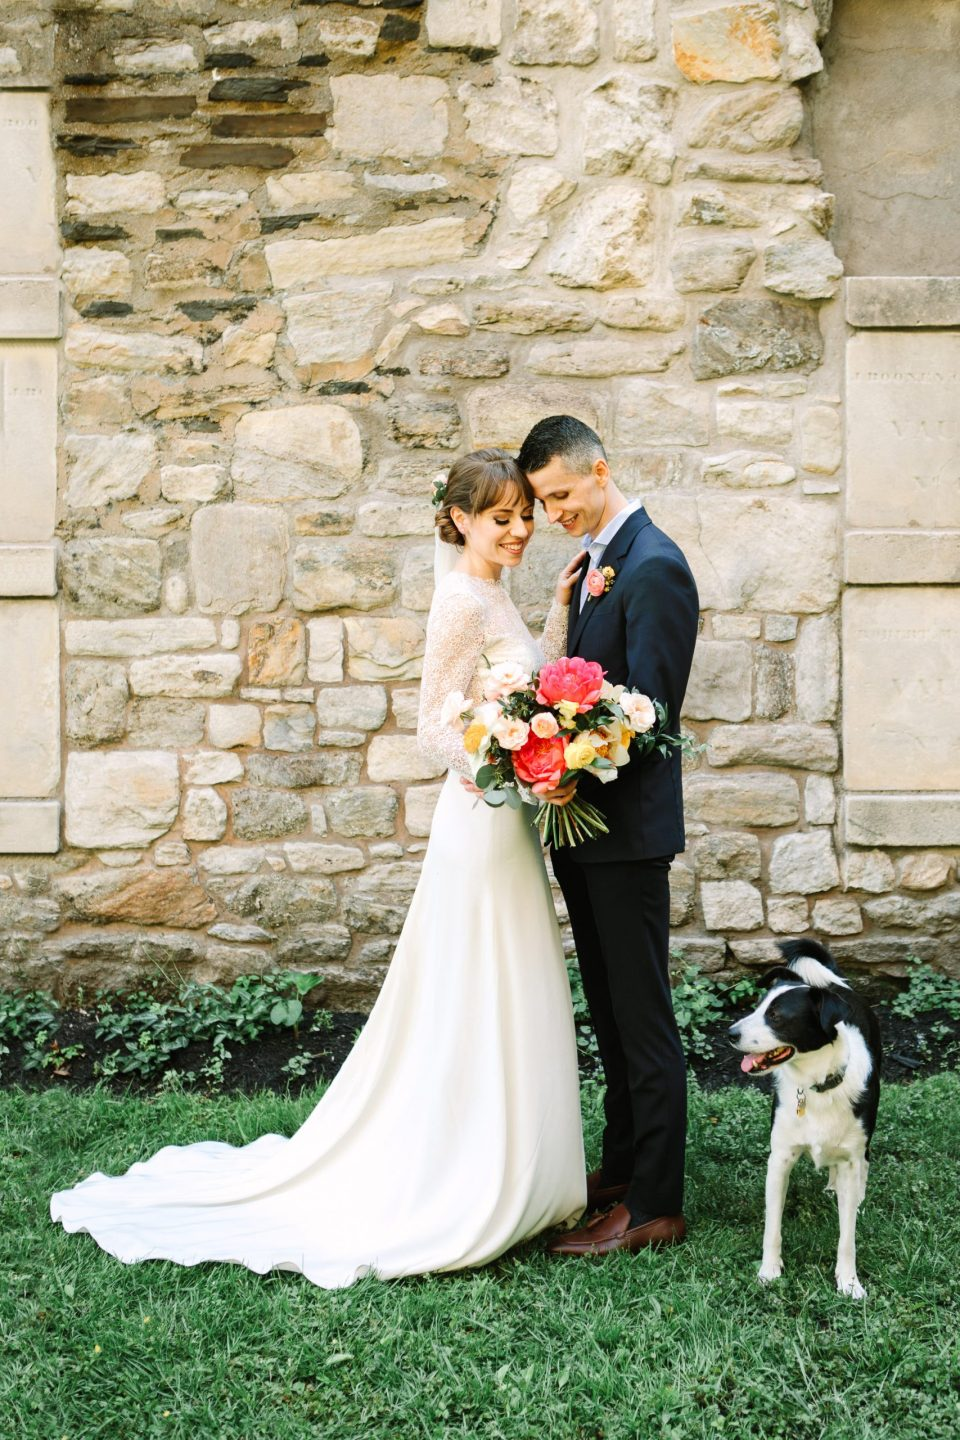 Bride and groom with their dog by Mary Costa Photography